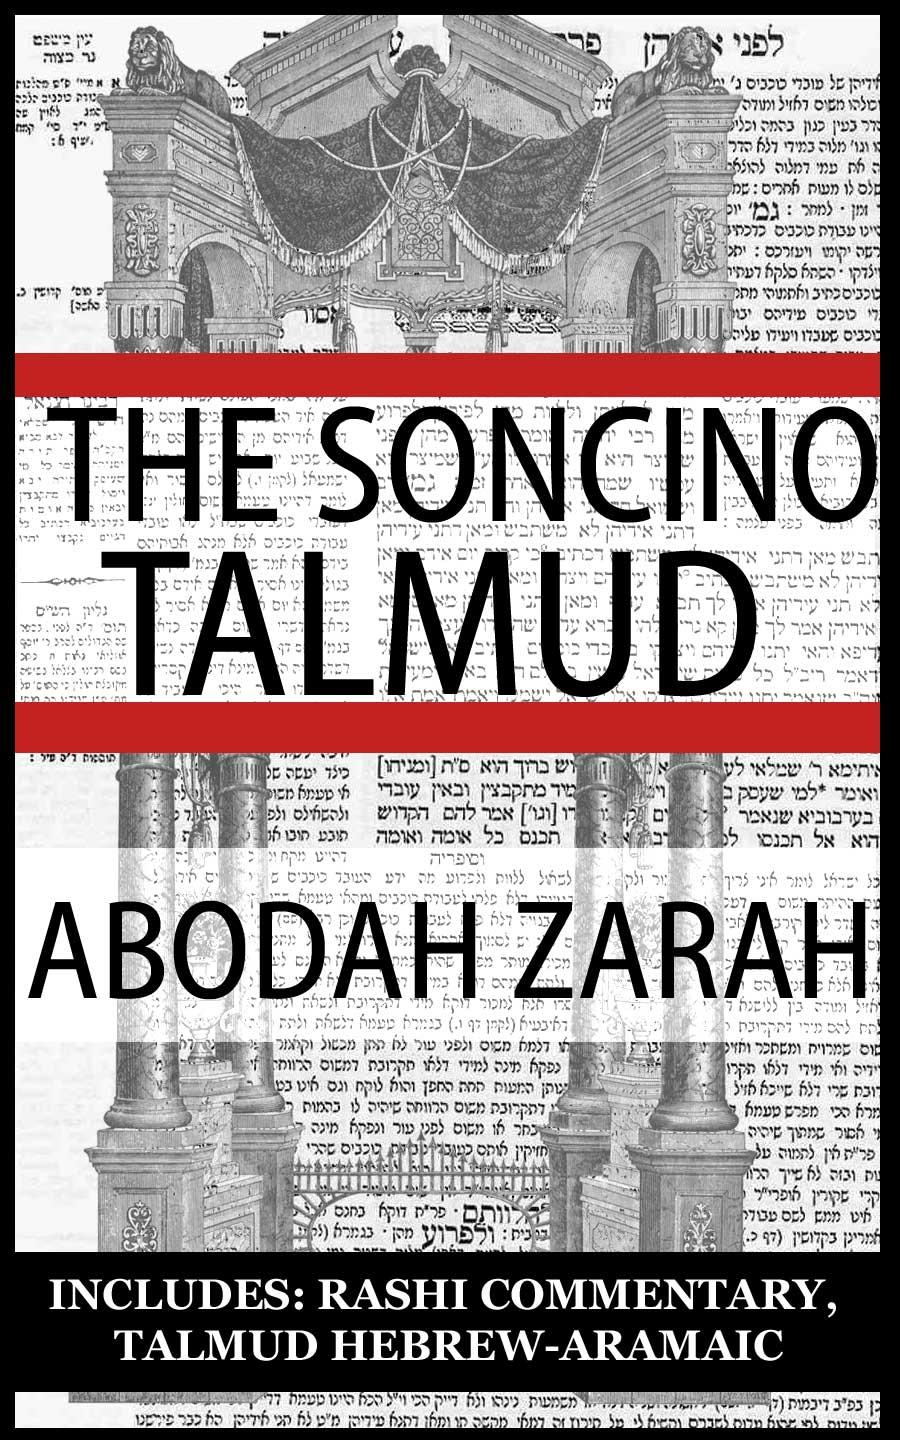 The Babylonian Talmud: Tractate Abodah Zarah, Soncino Edition (Hebrew/English) EB9785551463573